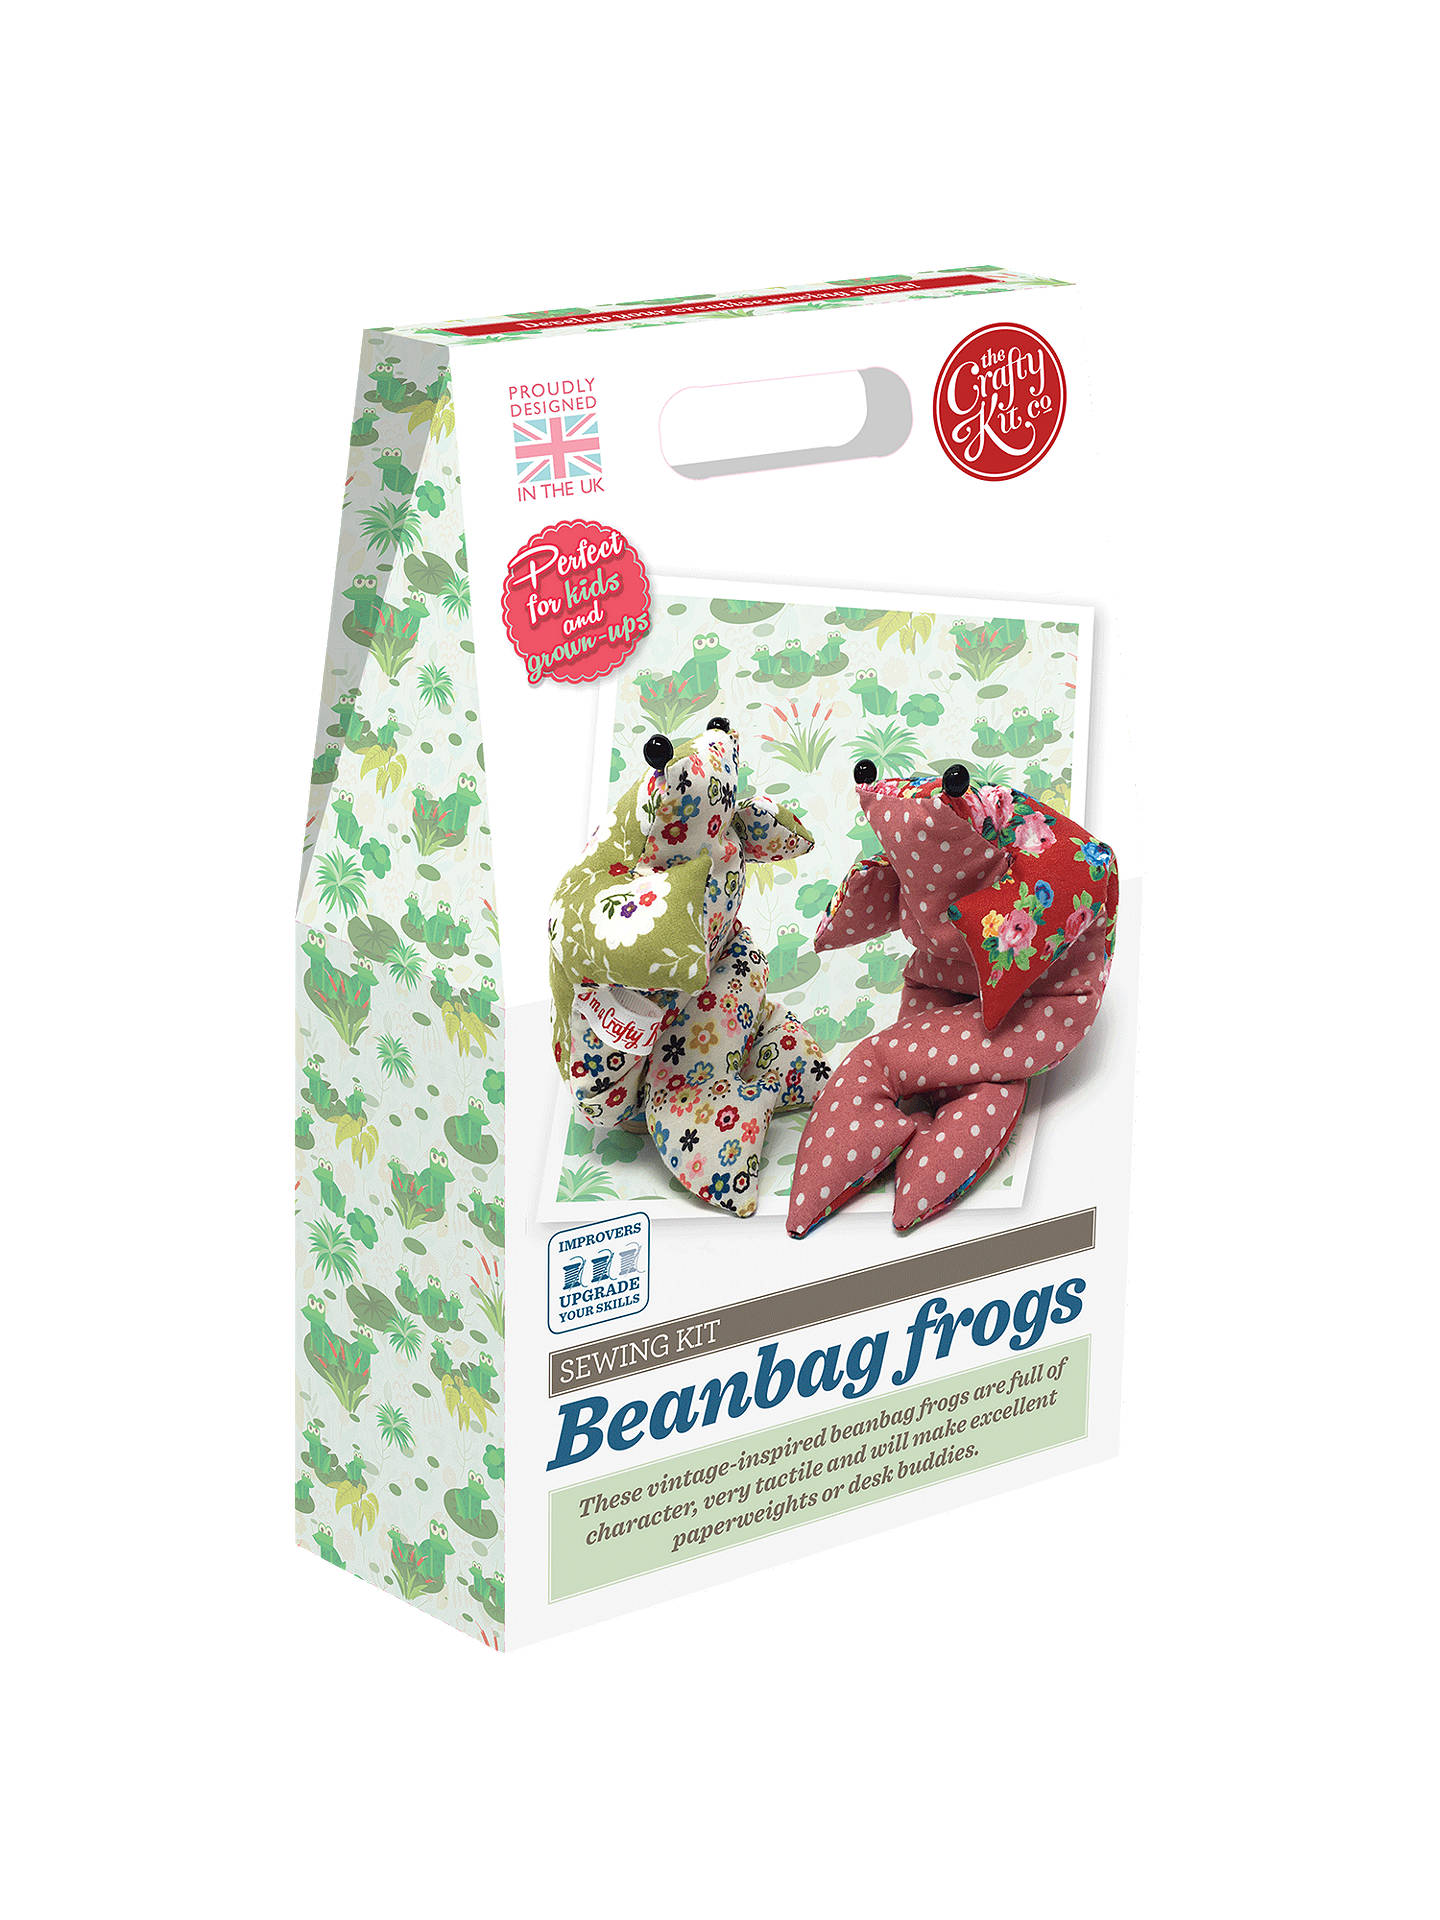 Buy The Crafty Kit Company Sew Your Own Bean Bag Frogs Craft Kit Online at johnlewis.com